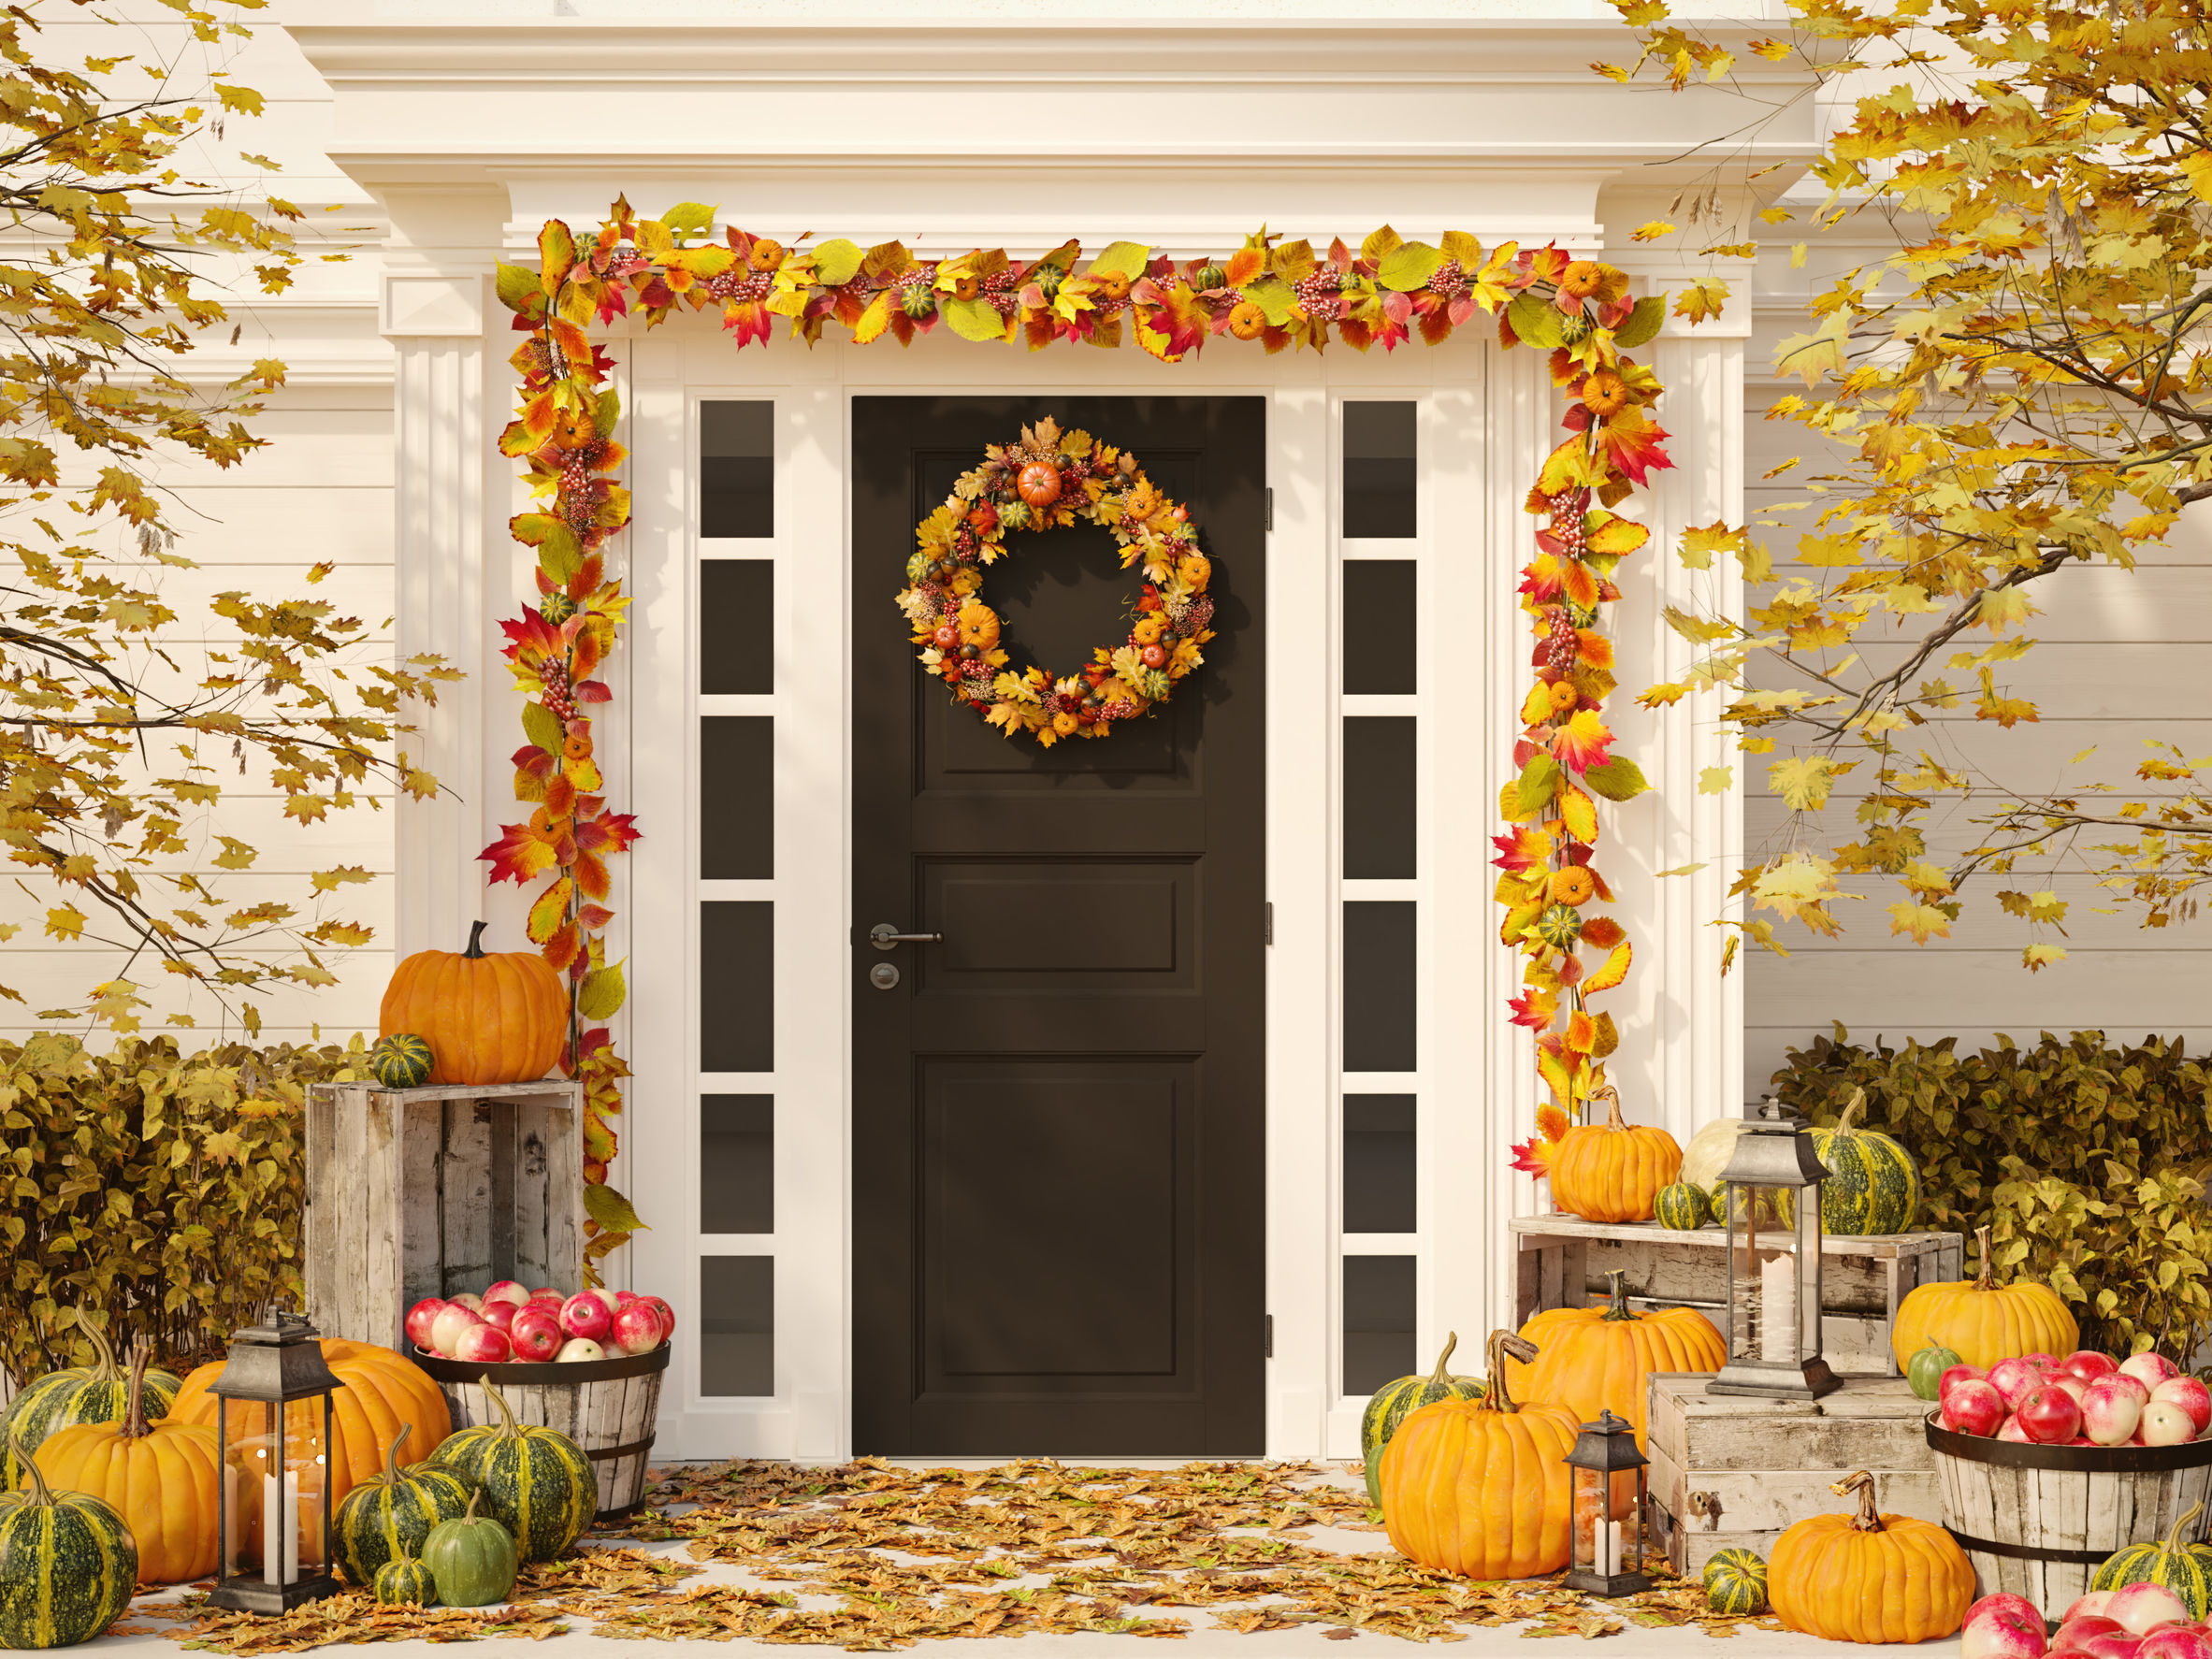 4 Fall Patio Decorating Ideas